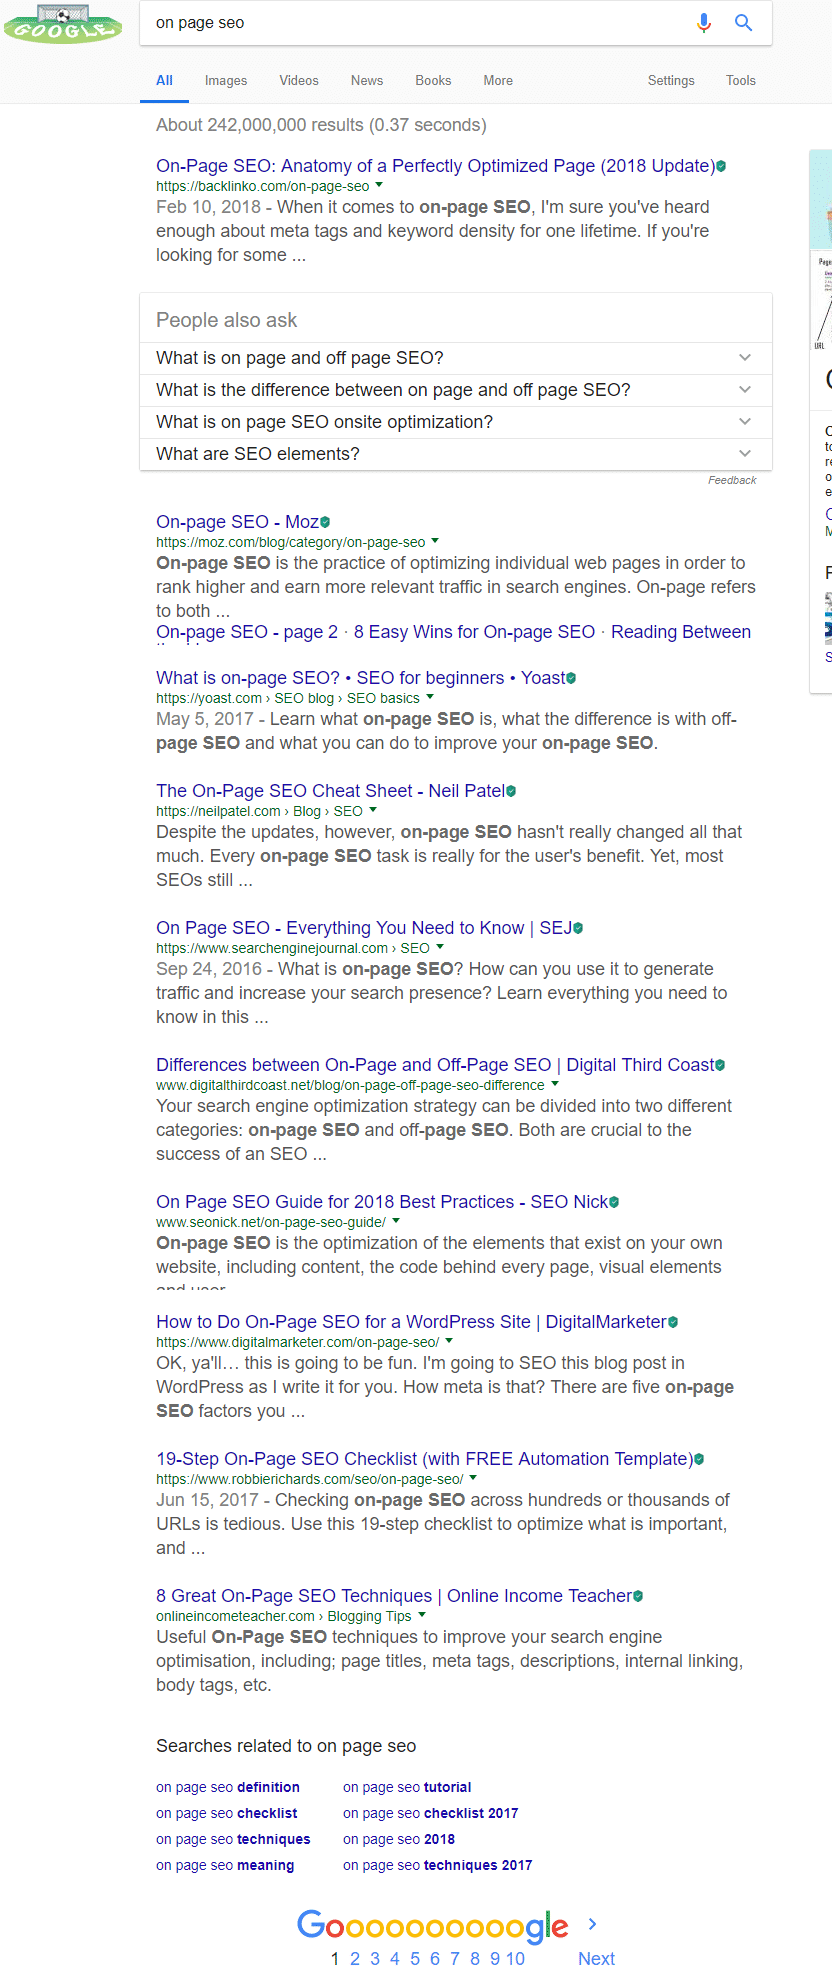 on page SEO search result